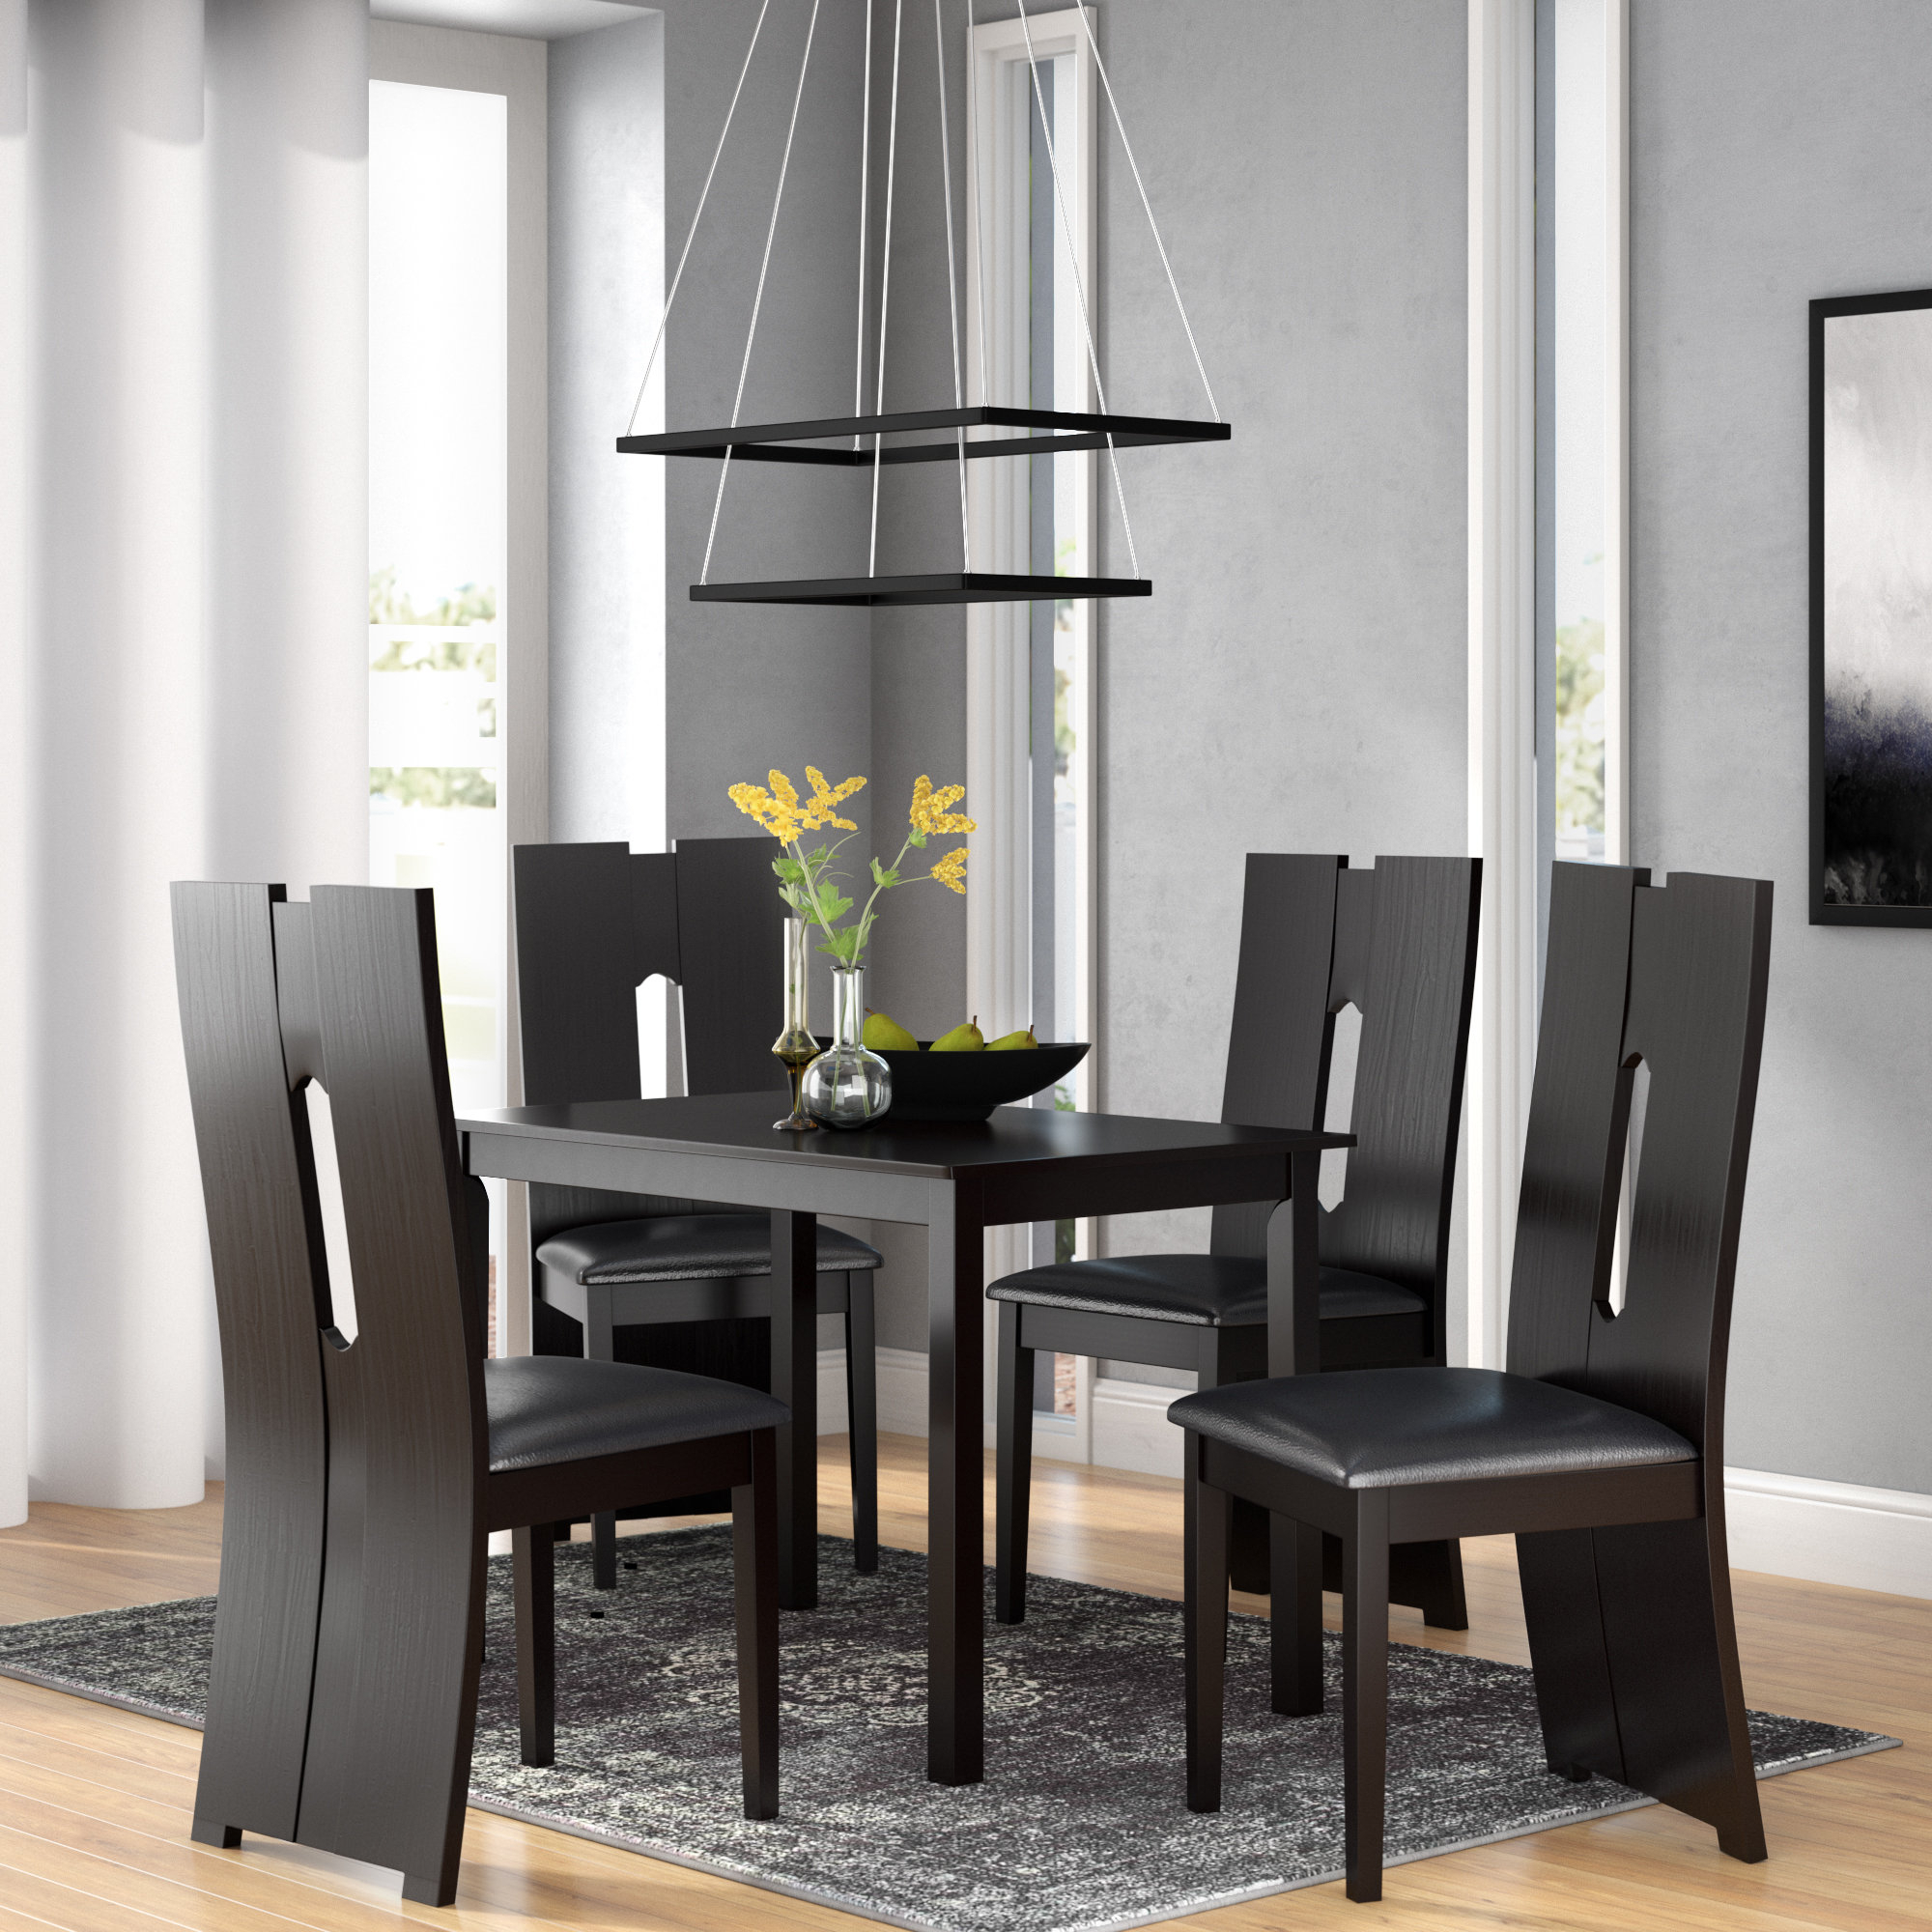 5 Piece Breakfast Nook Dining Sets Pertaining To 2017 Onsted Modern And Contemporary 5 Piece Breakfast Nook Dining Set (View 15 of 20)